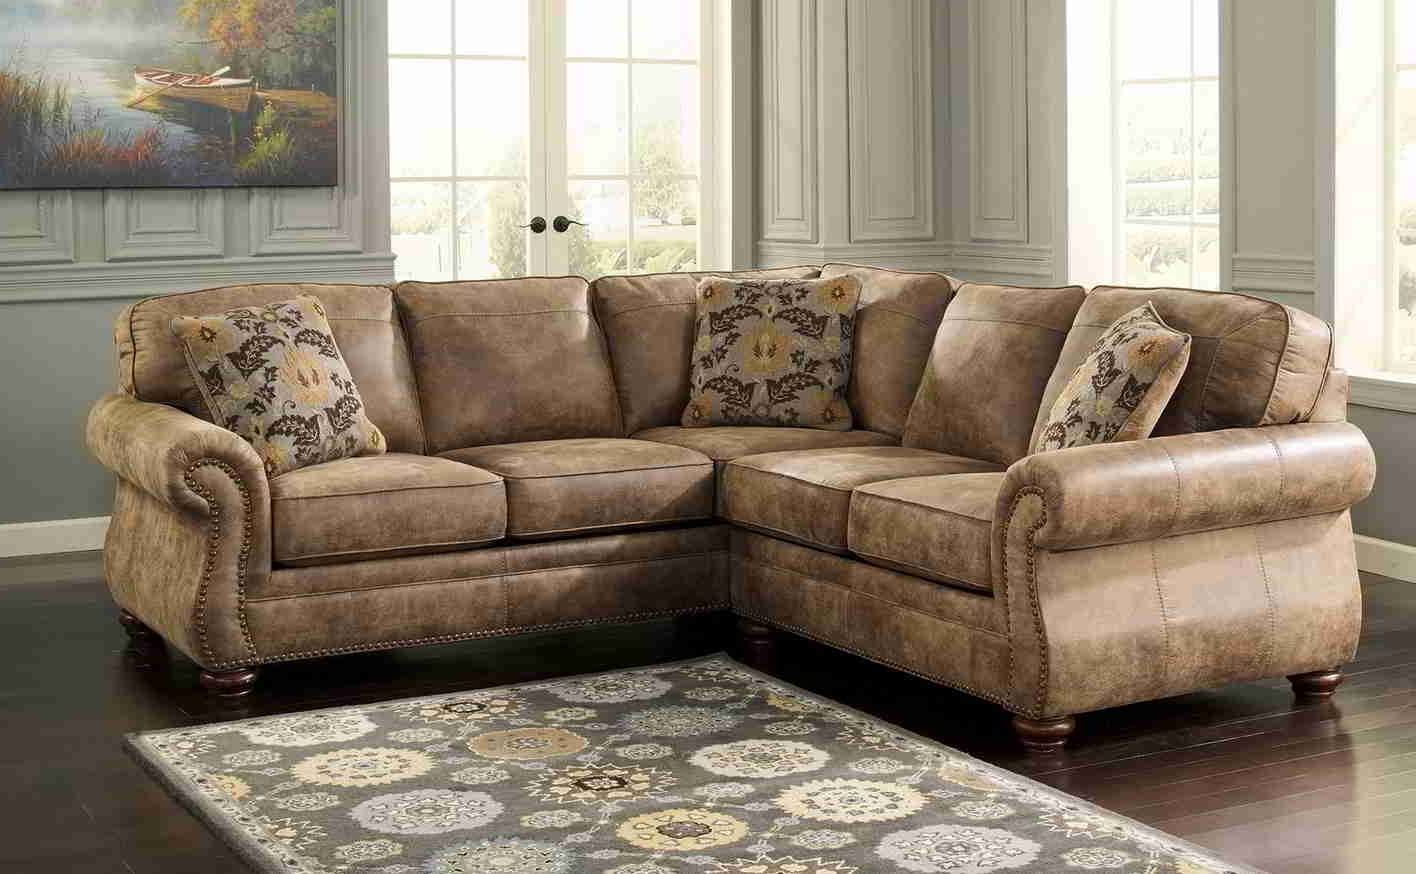 Best Wide Seat Sectional Sofas 95 About Remodel High Back Within Popular Sectional Sofas With High Backs (View 6 of 15)